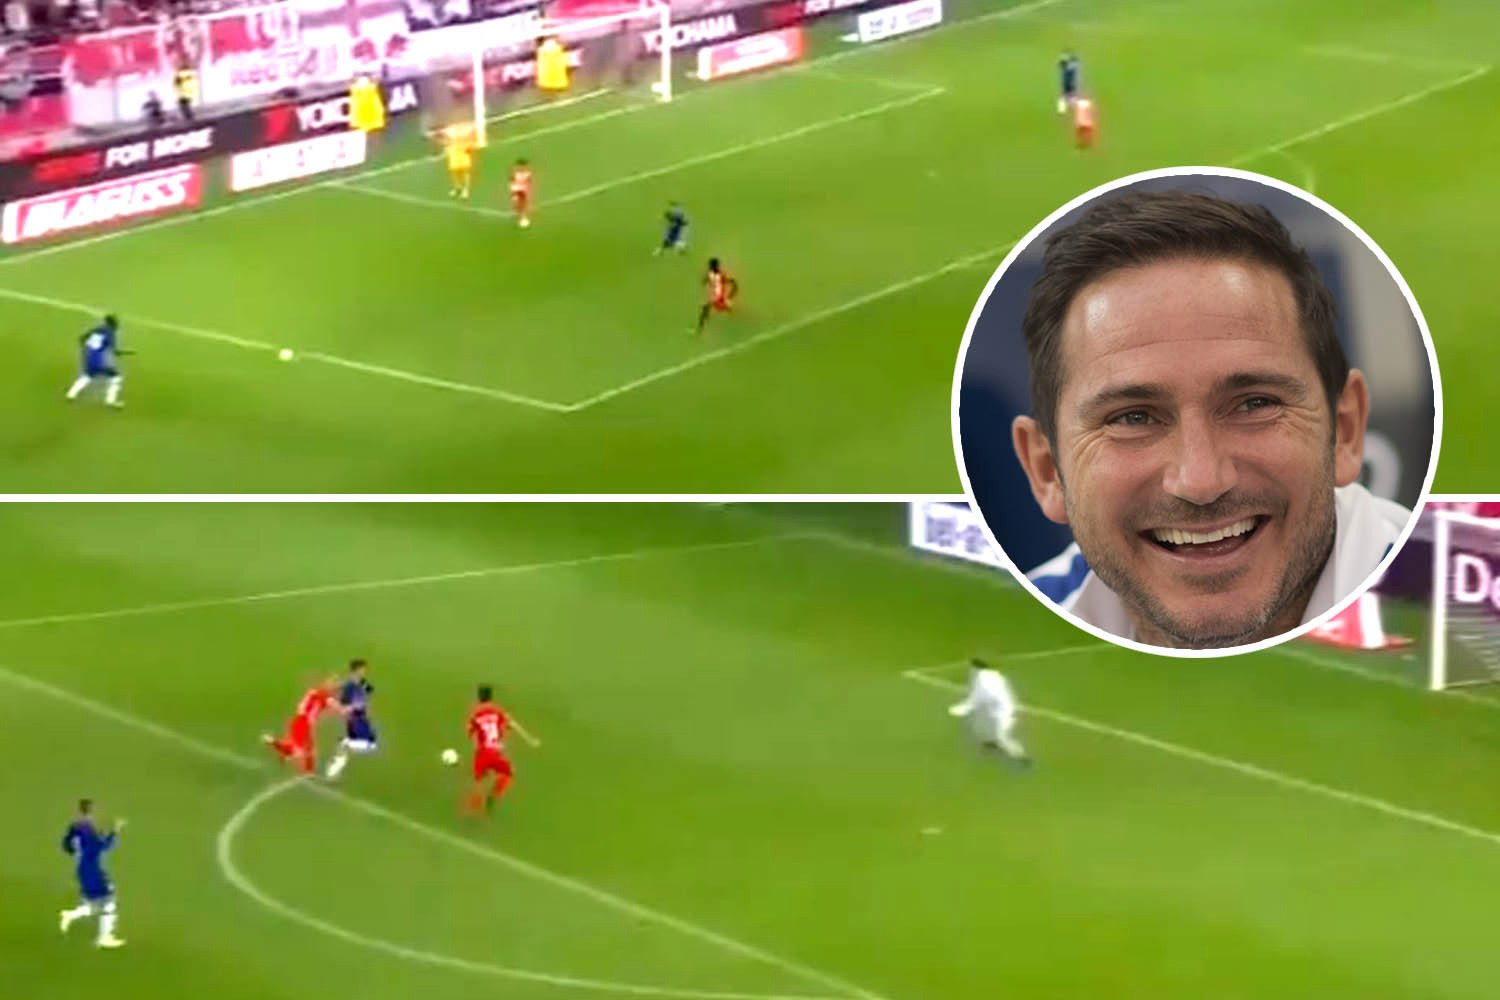 Chelsea fans go mad for 'Frankieball' as incredible footage shows the Blues seamlessly playing out from back to RB Salzburg's box – The Sun